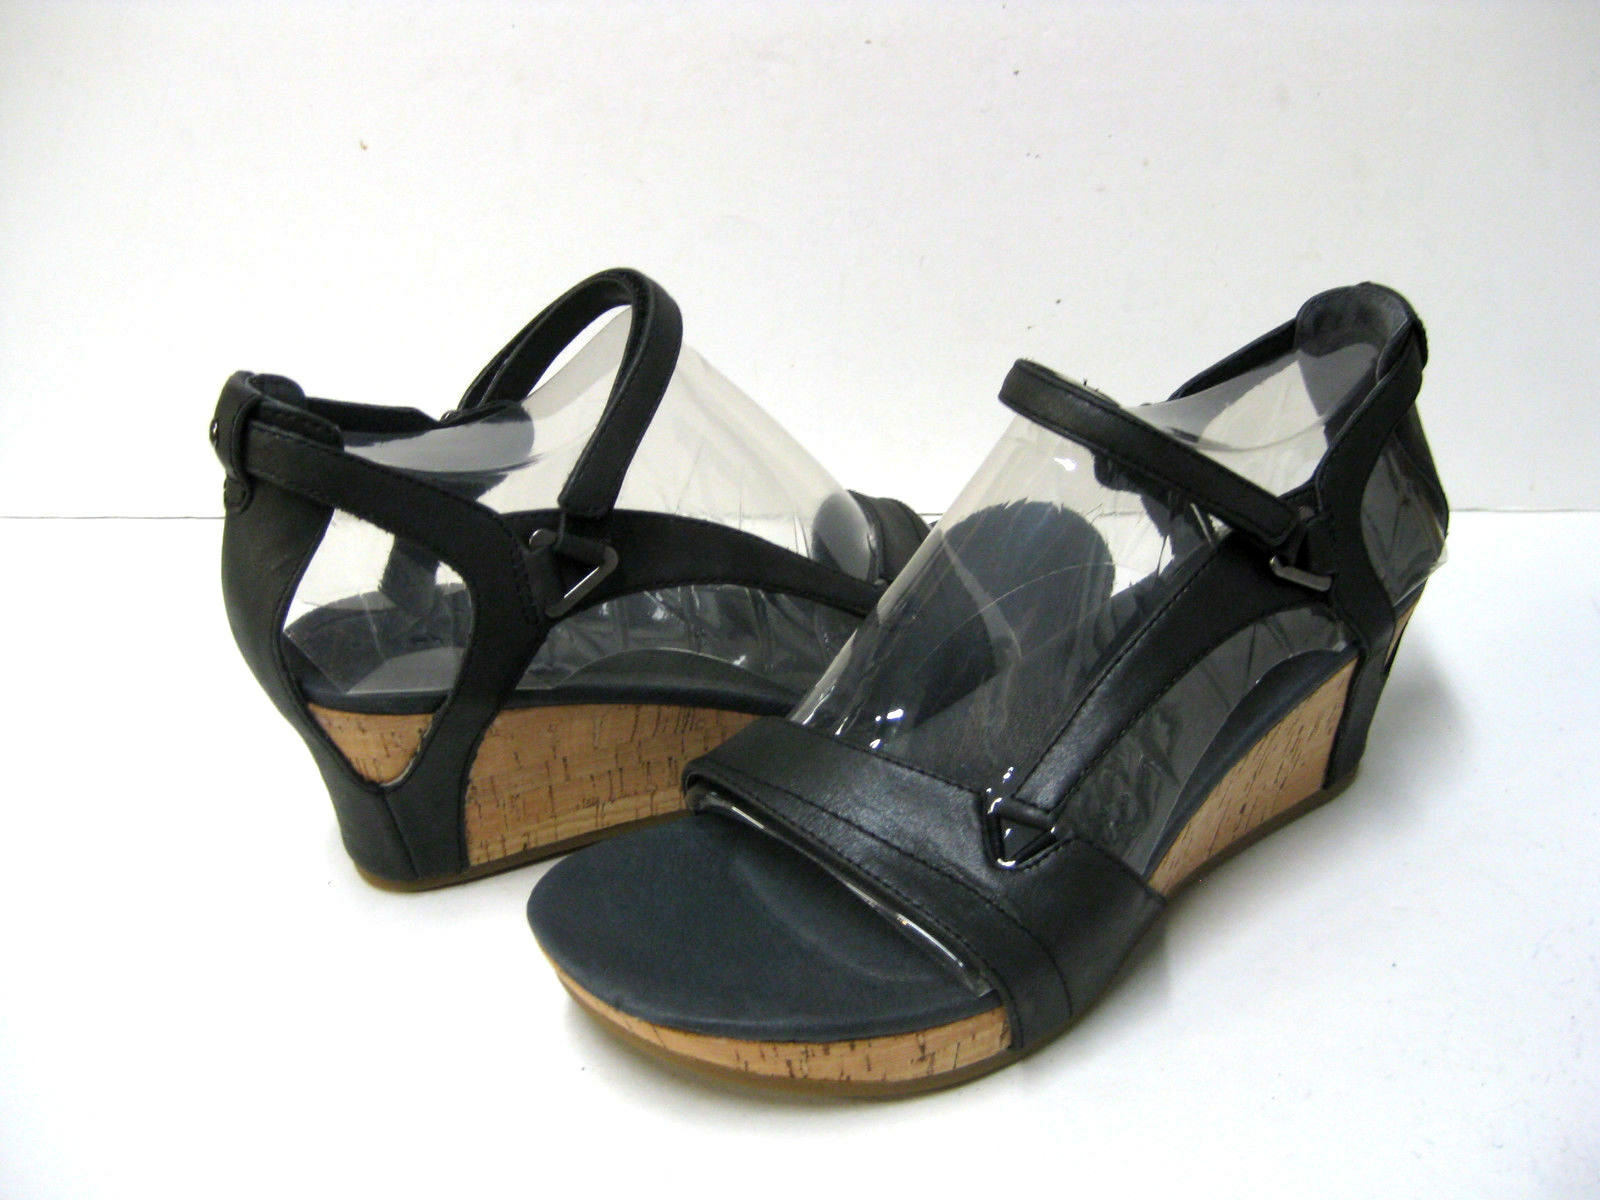 TEVA CAPRI WOMEN SANDALS LEATHER BLACK US 9  UK 7  EU 40